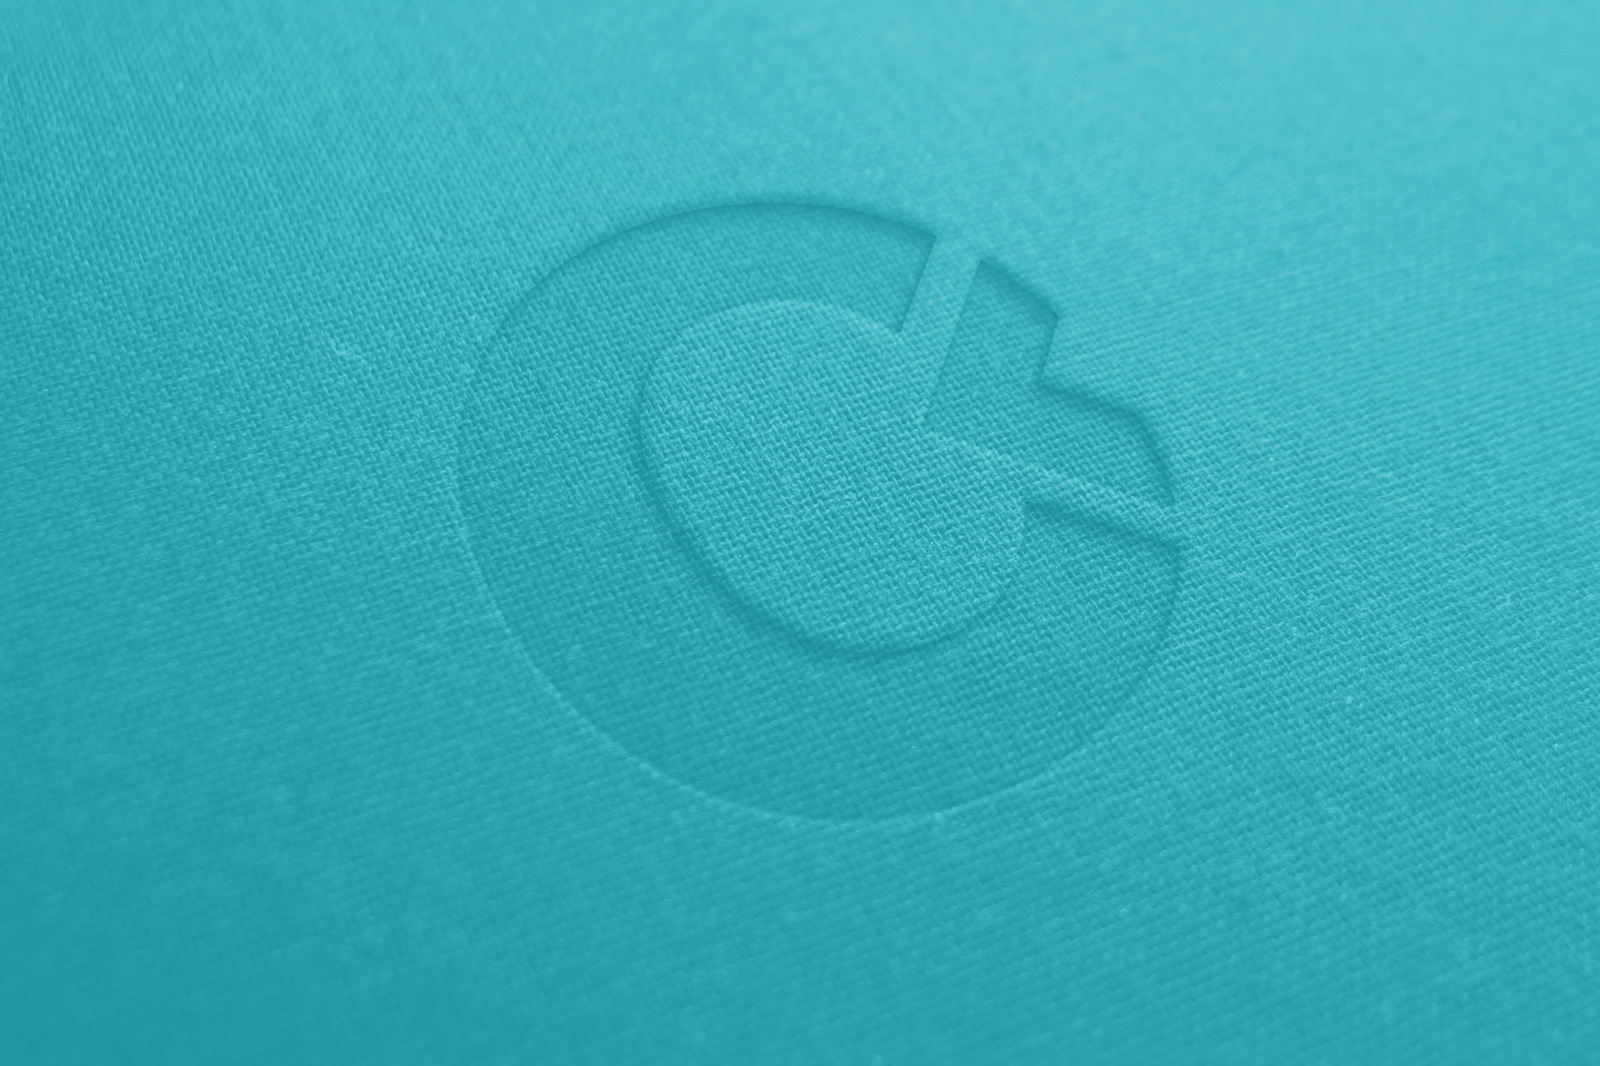 chandlers_logo_embossed_lbob_2000x1333